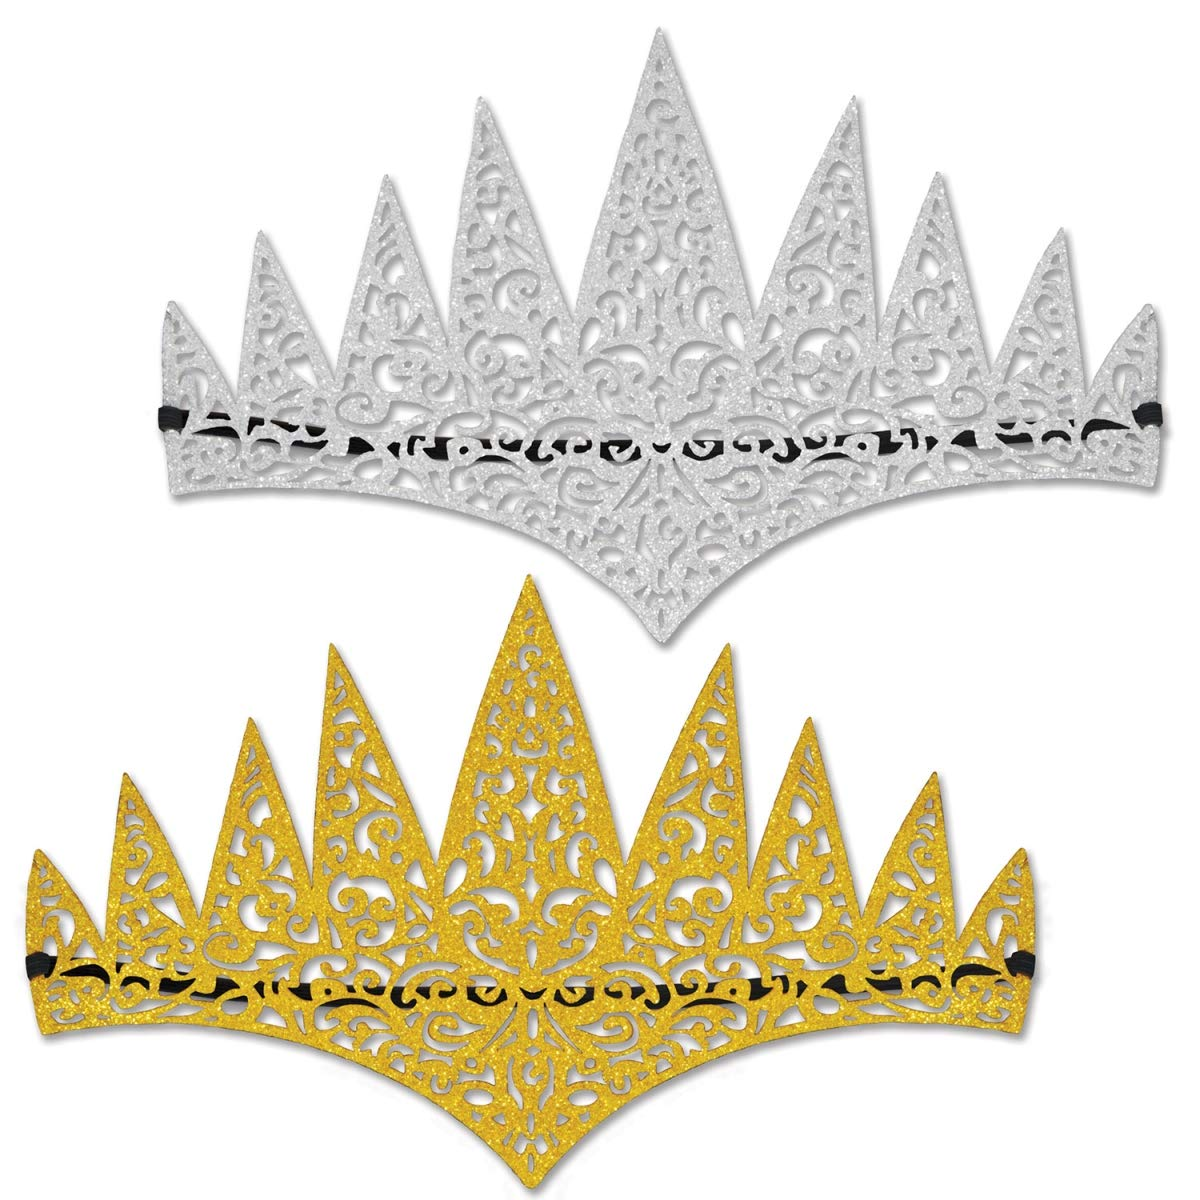 Beistle 60665 Glittered Laser Cut Tiaras - Pack of 12